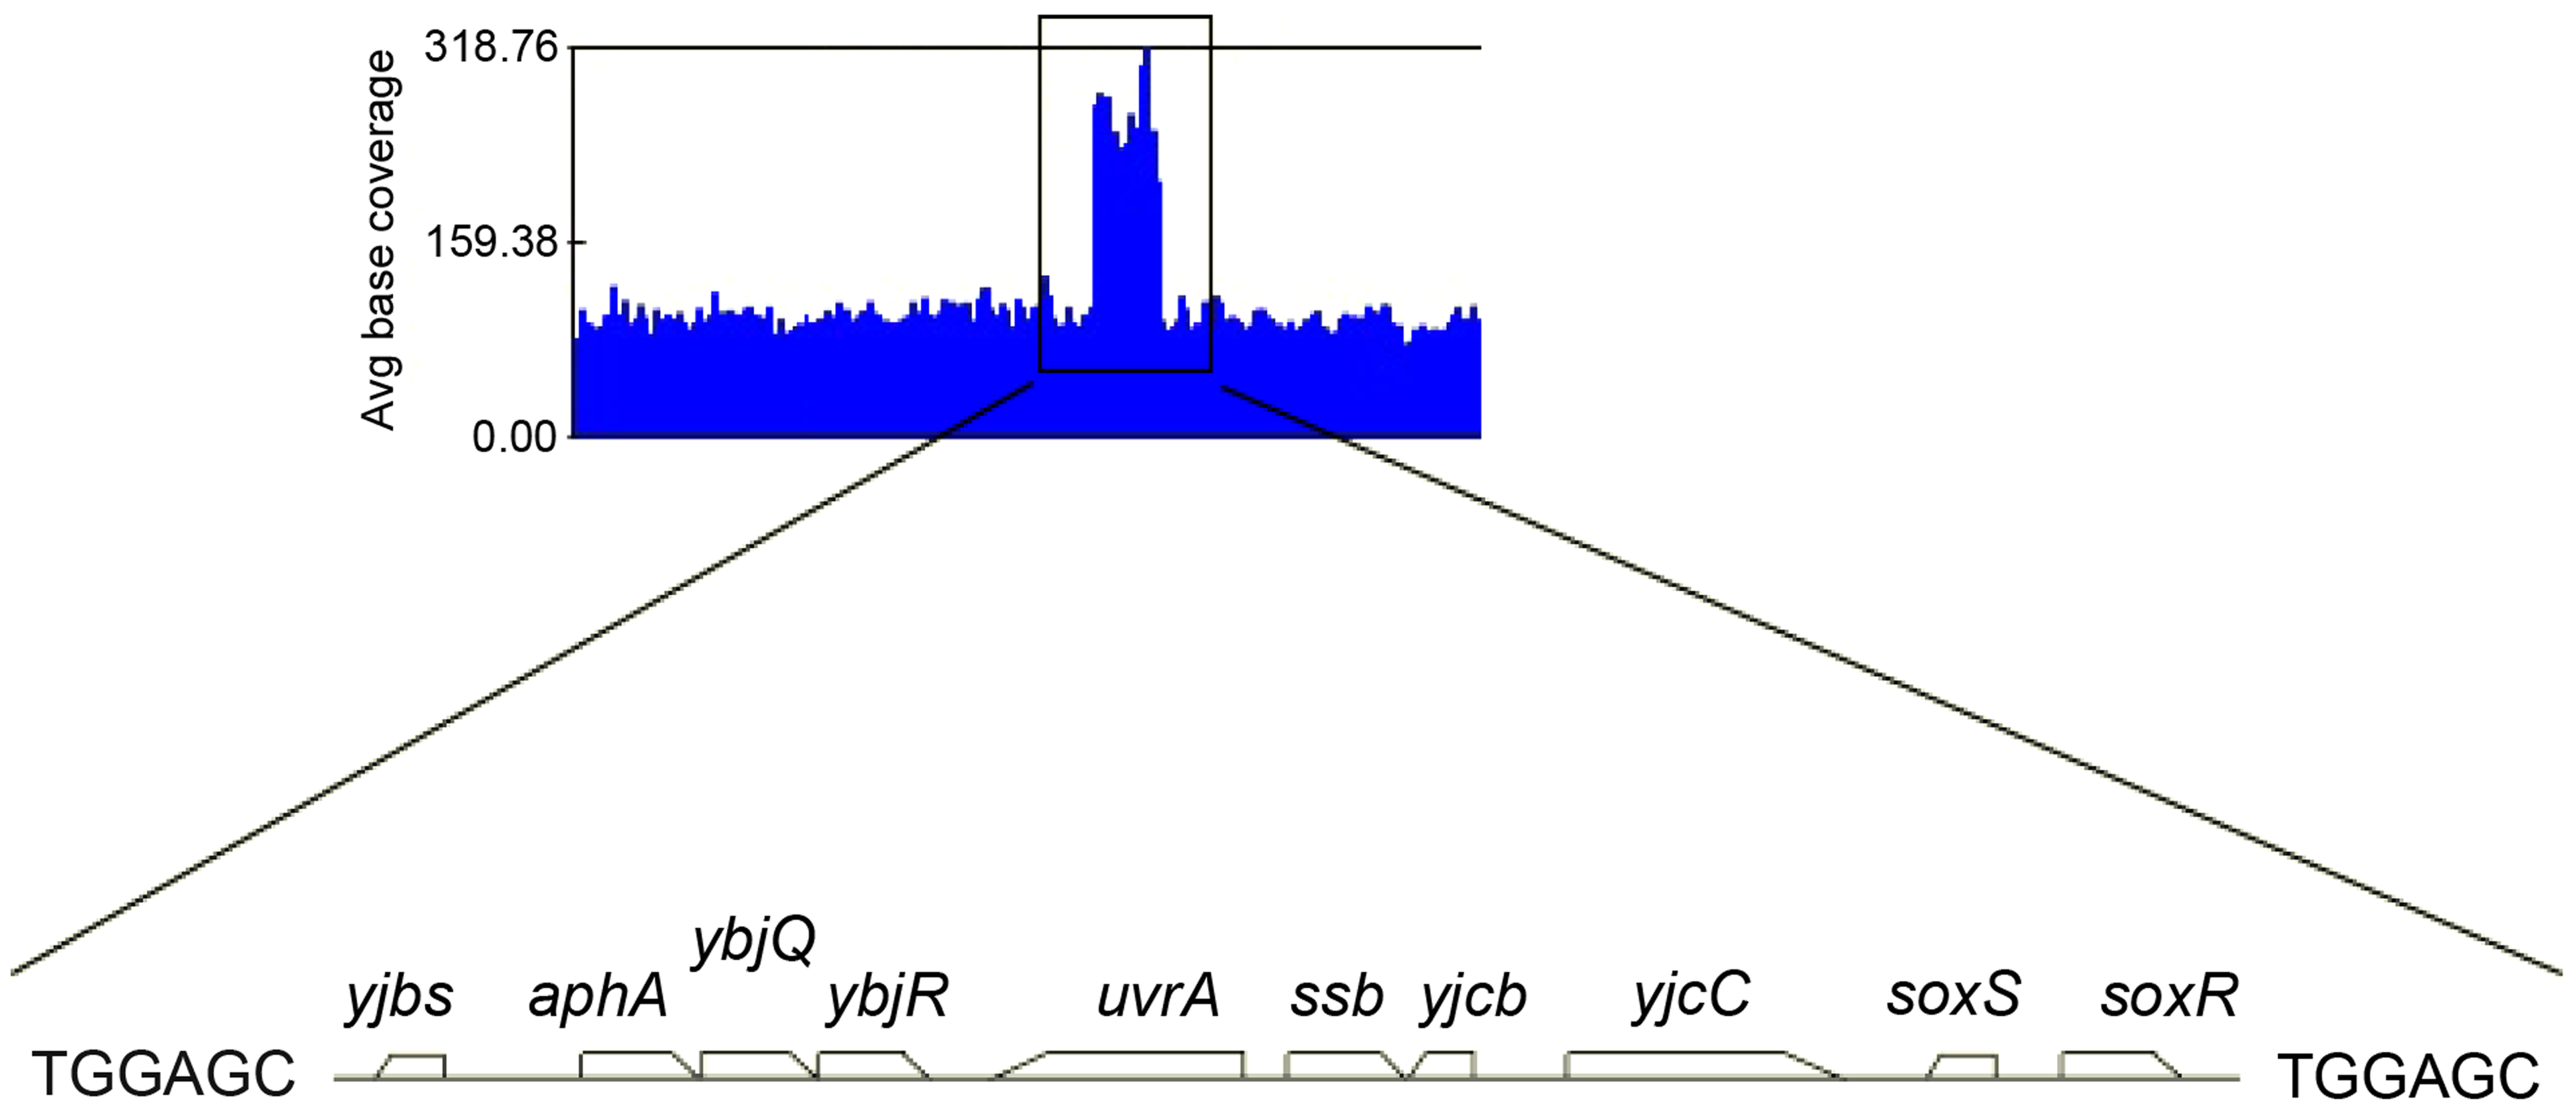 Duplicated sequence in JJC2394.